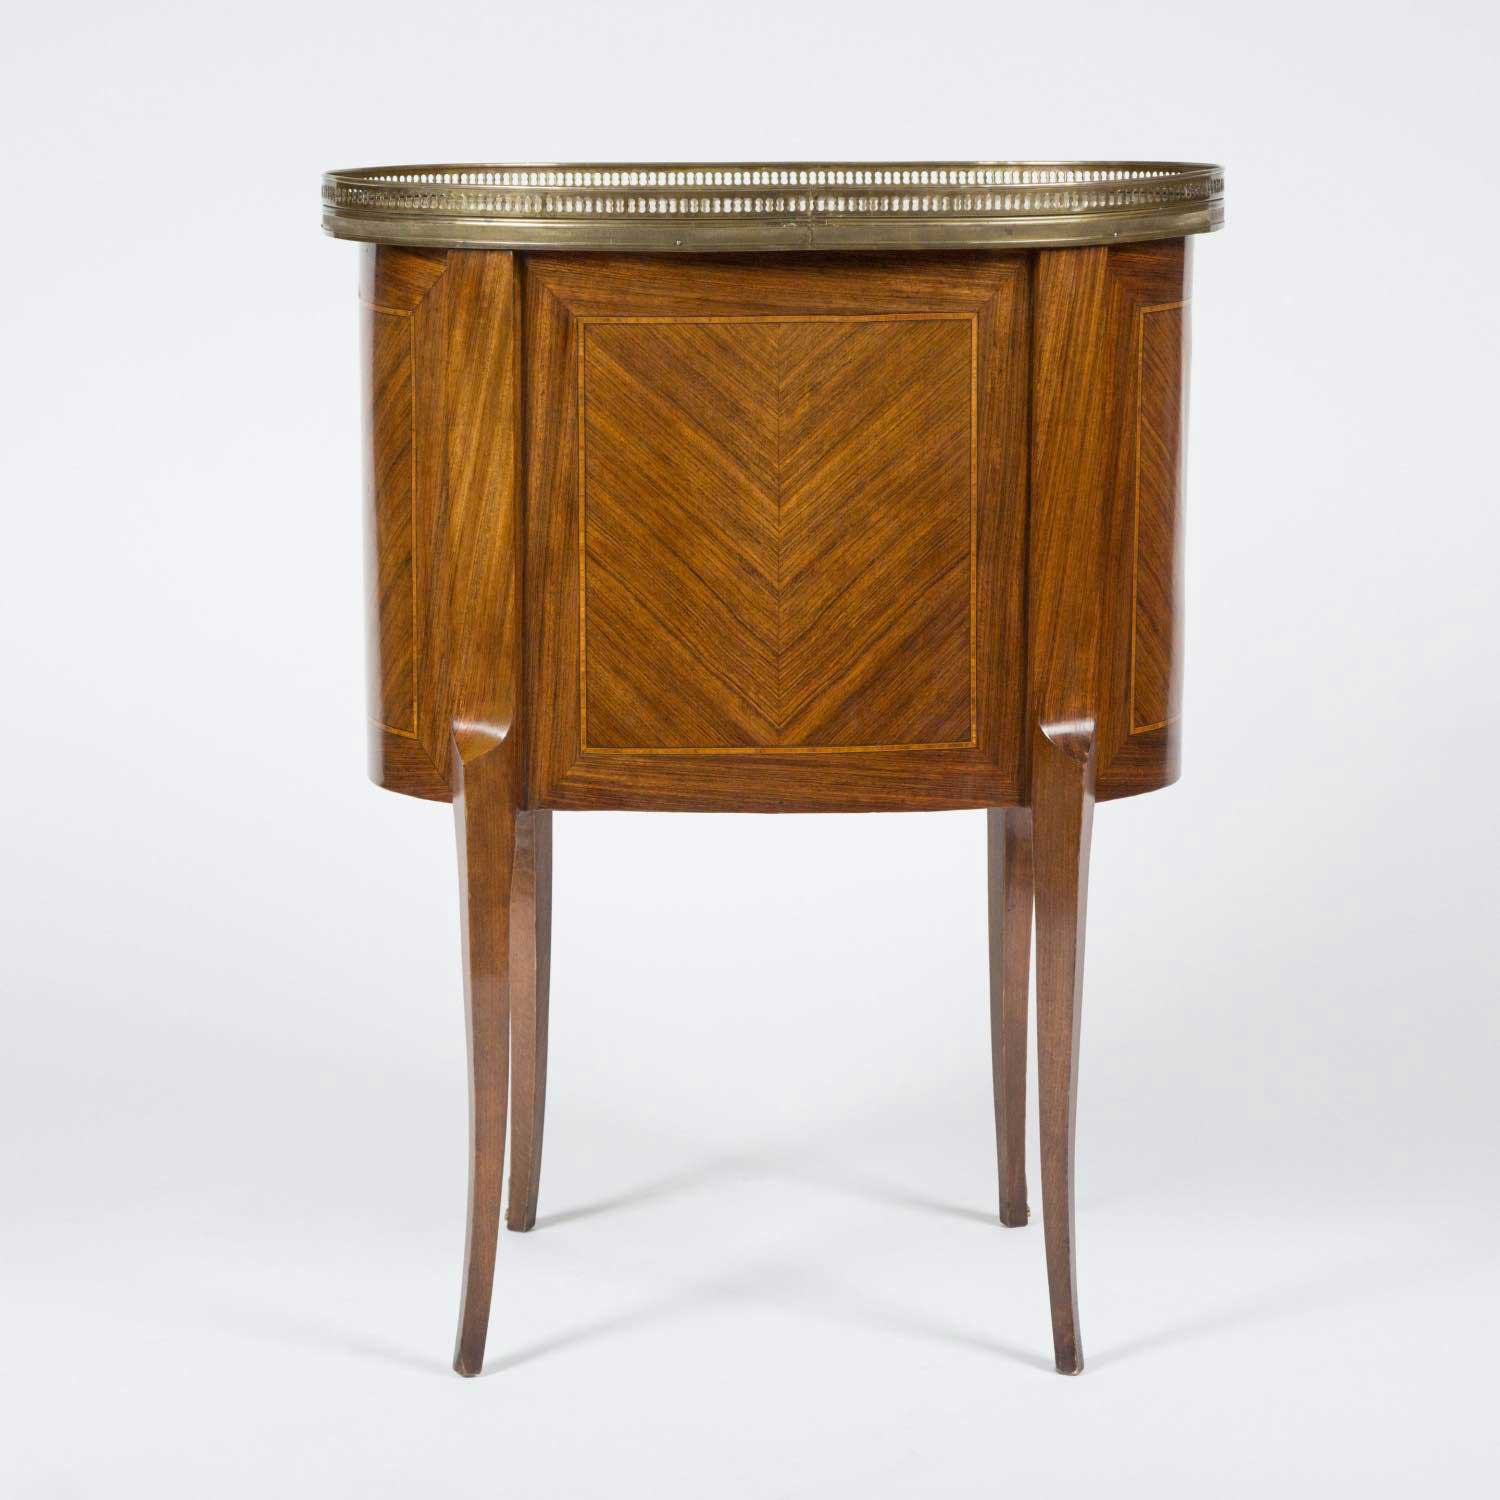 OVAL COMMODE WITH BRECHE D'ALEP TOP